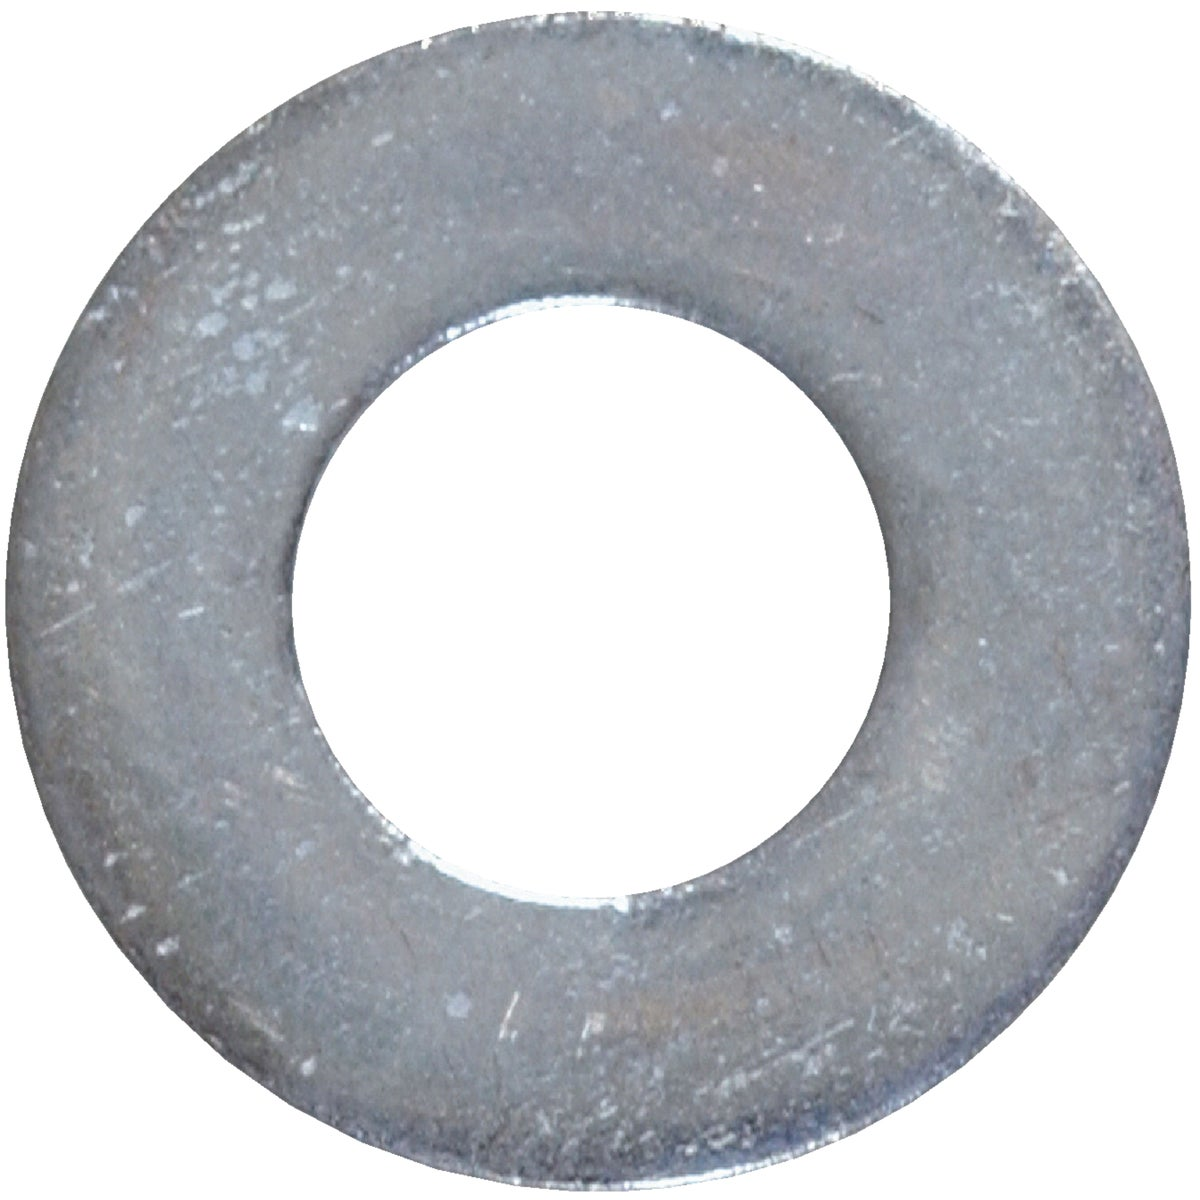 "5LB 1/2"" USS FLT WASHER - 811012 by Hillman Fastener"